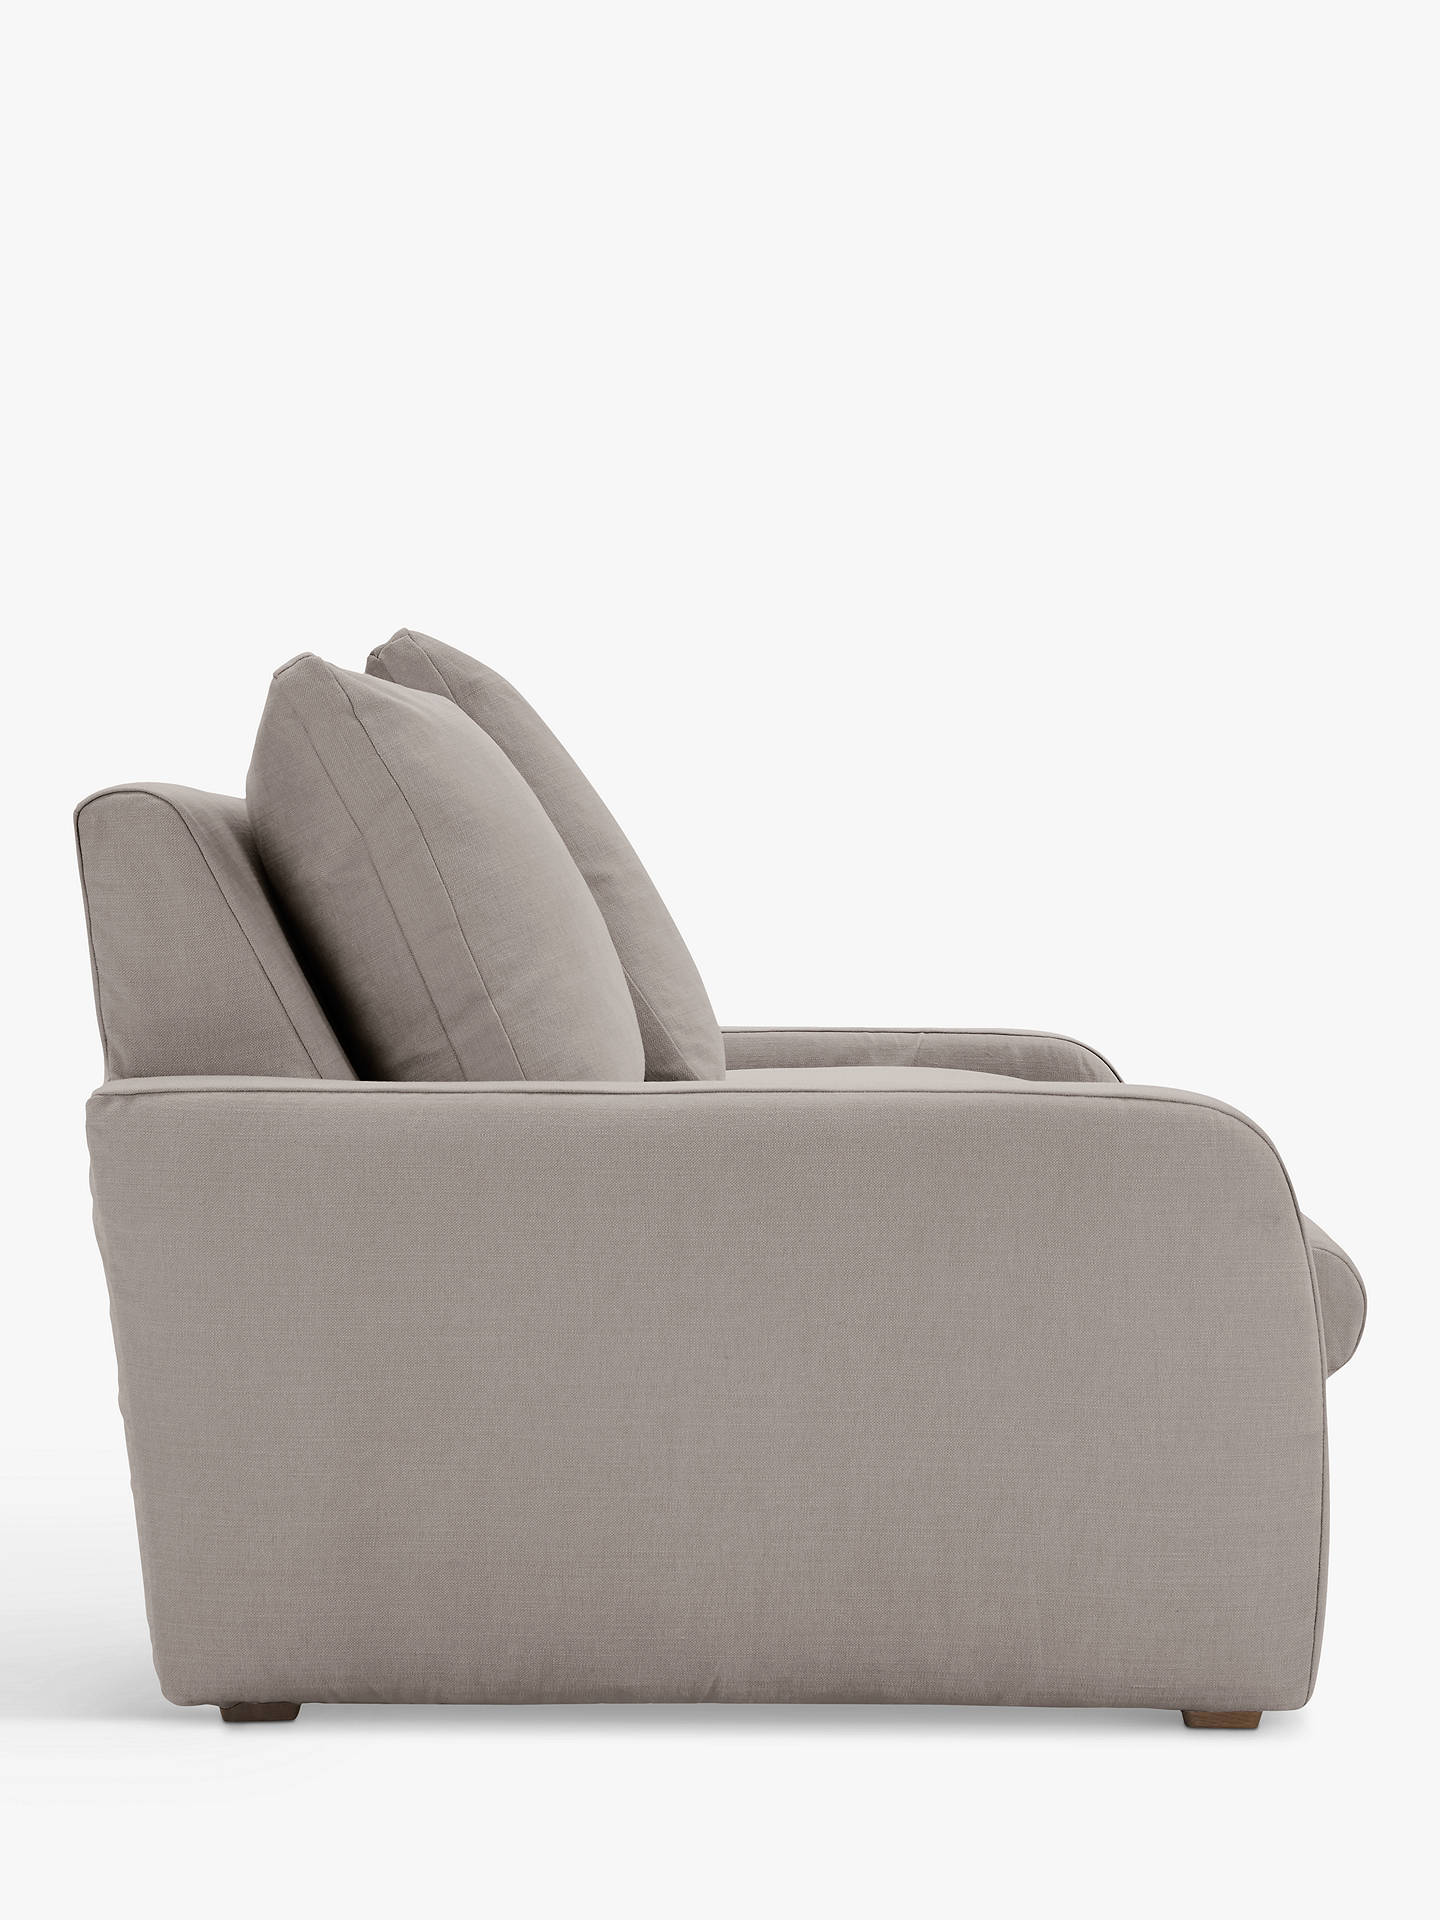 Buy Floppy Jo Large 3 Seater Sofa by Loaf at John Lewis, Brushed Cotton Wolf Online at johnlewis.com